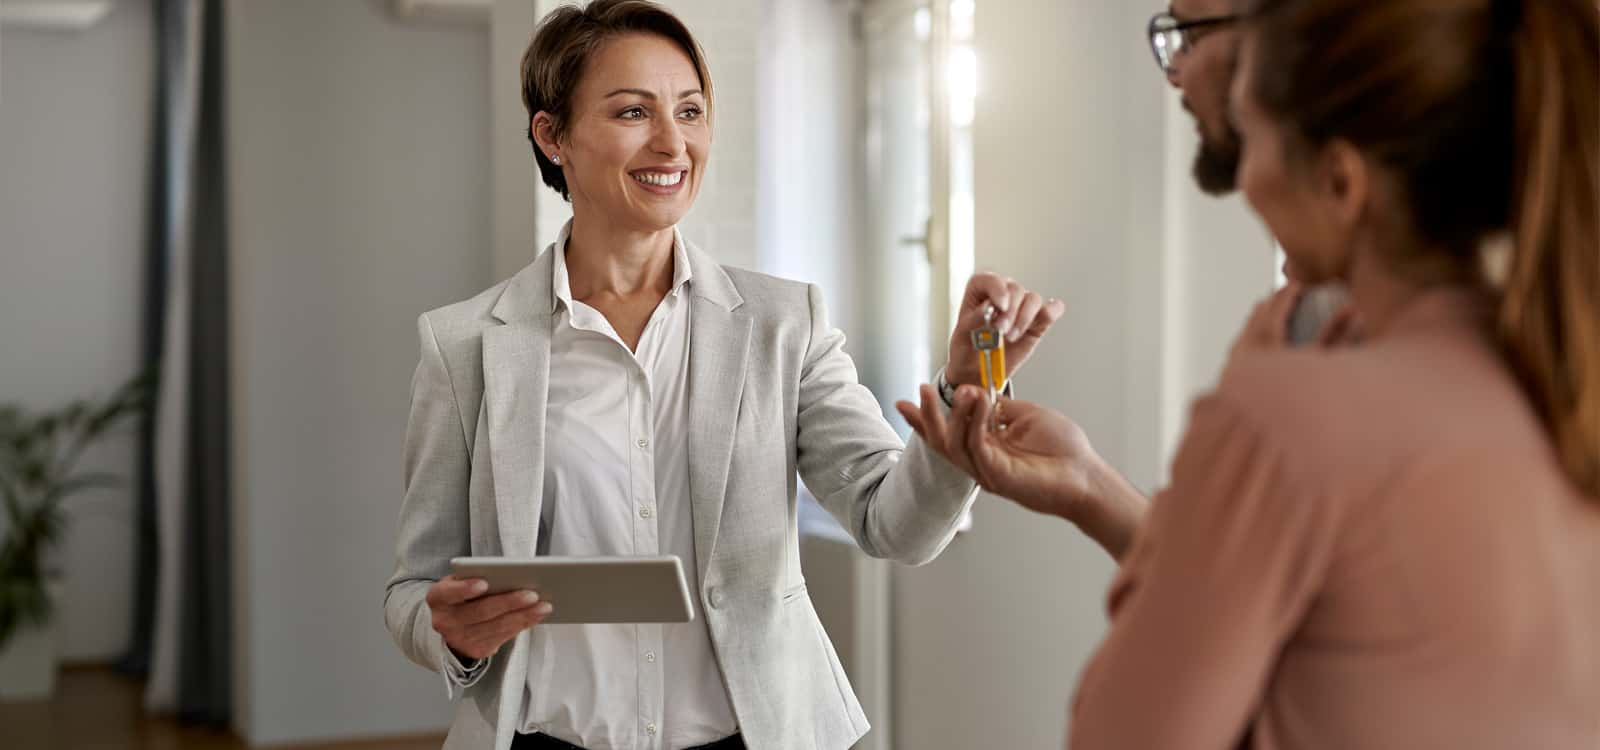 A woman in a blazer hands a pair of keys to couple, indicating she pursued the small business idea of becoming a real estate agent